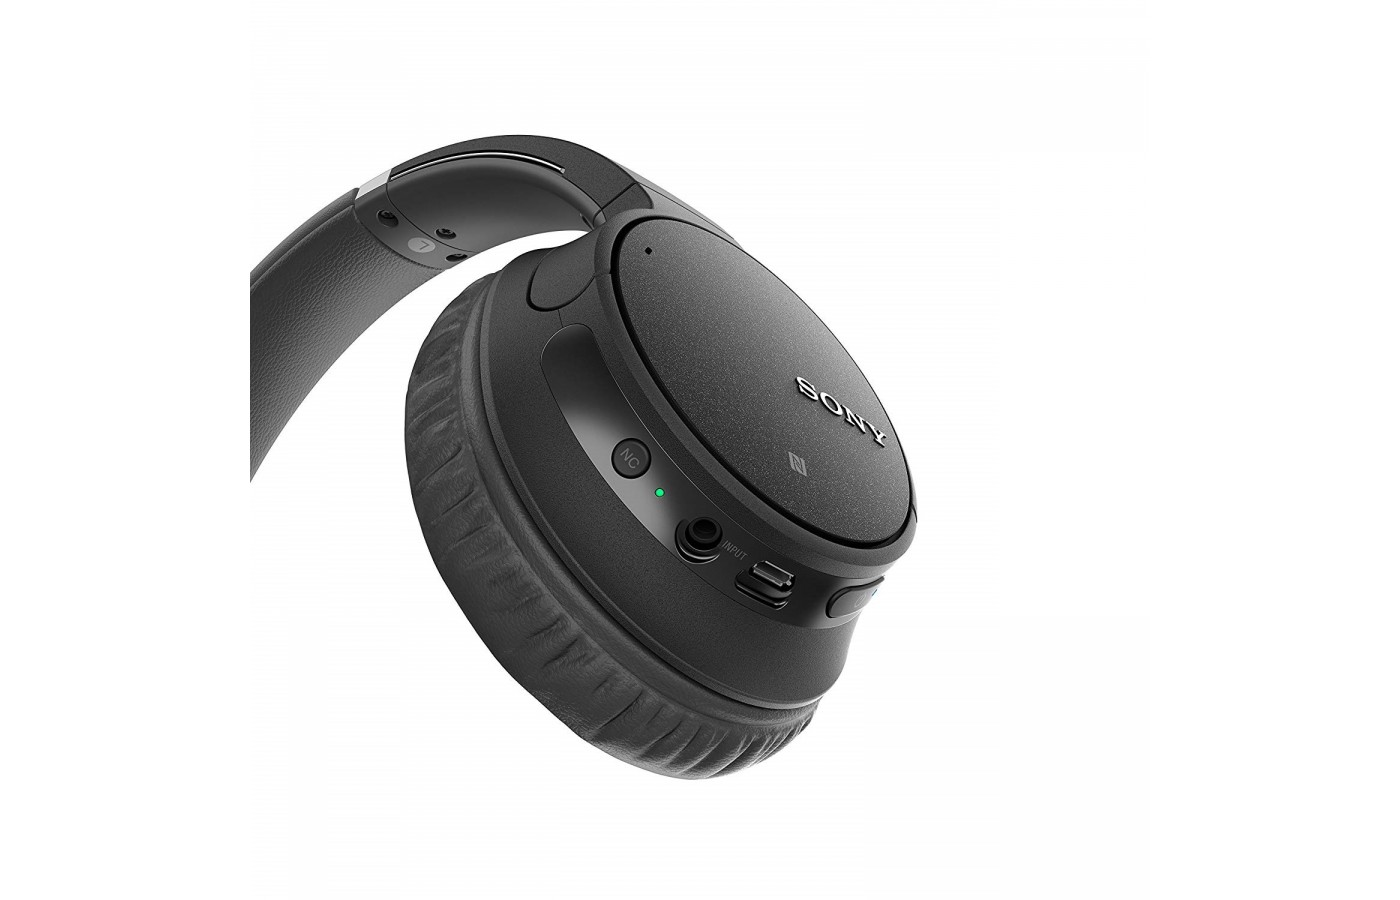 The Sony WH-CH700N offers functions directly on the device itself for ease of use.